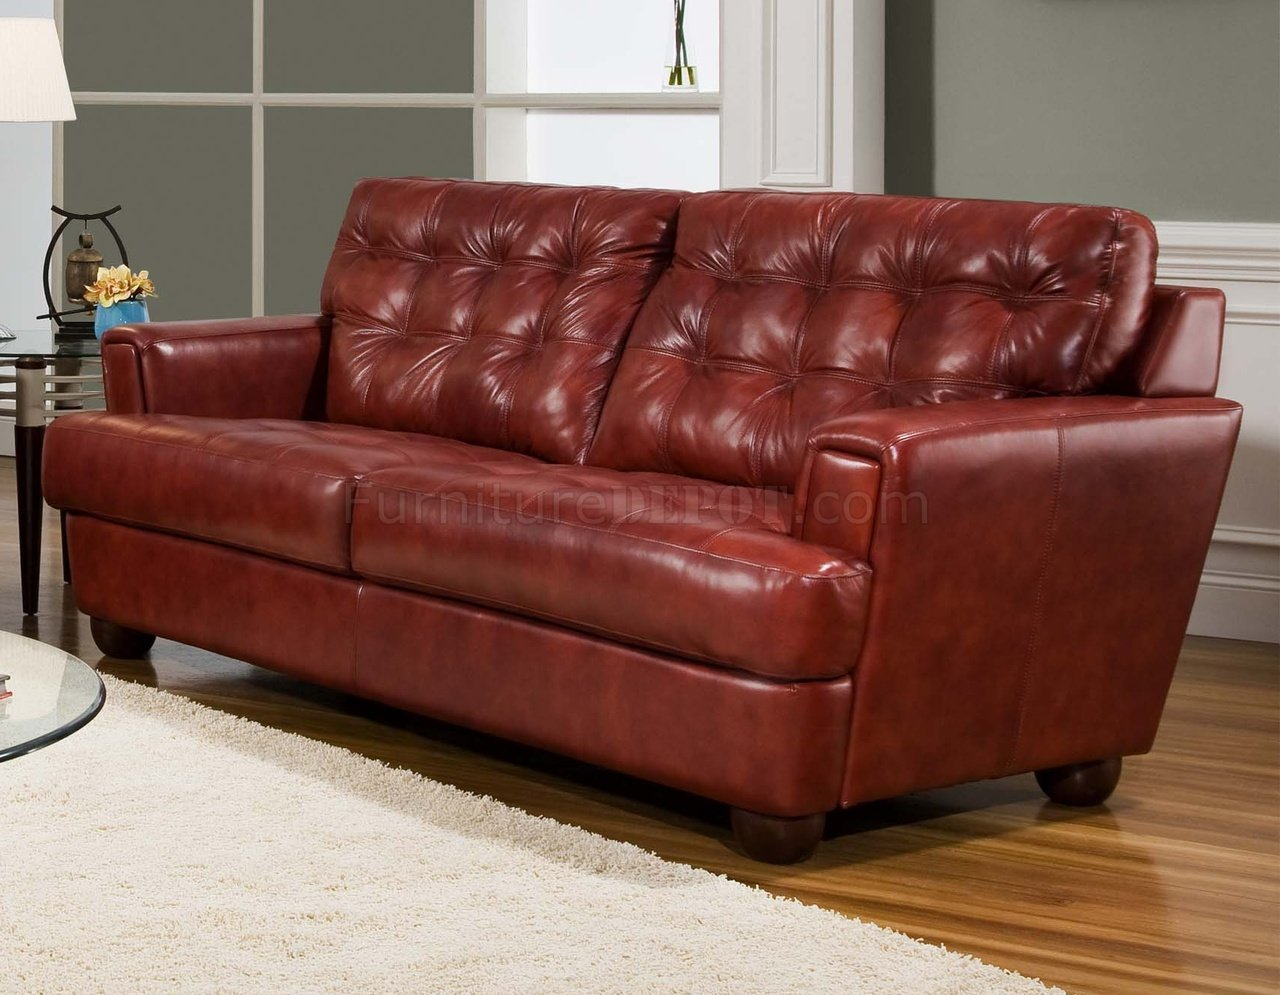 Burgundy tufted top grain leather modern sofa w options Burgundy leather loveseat